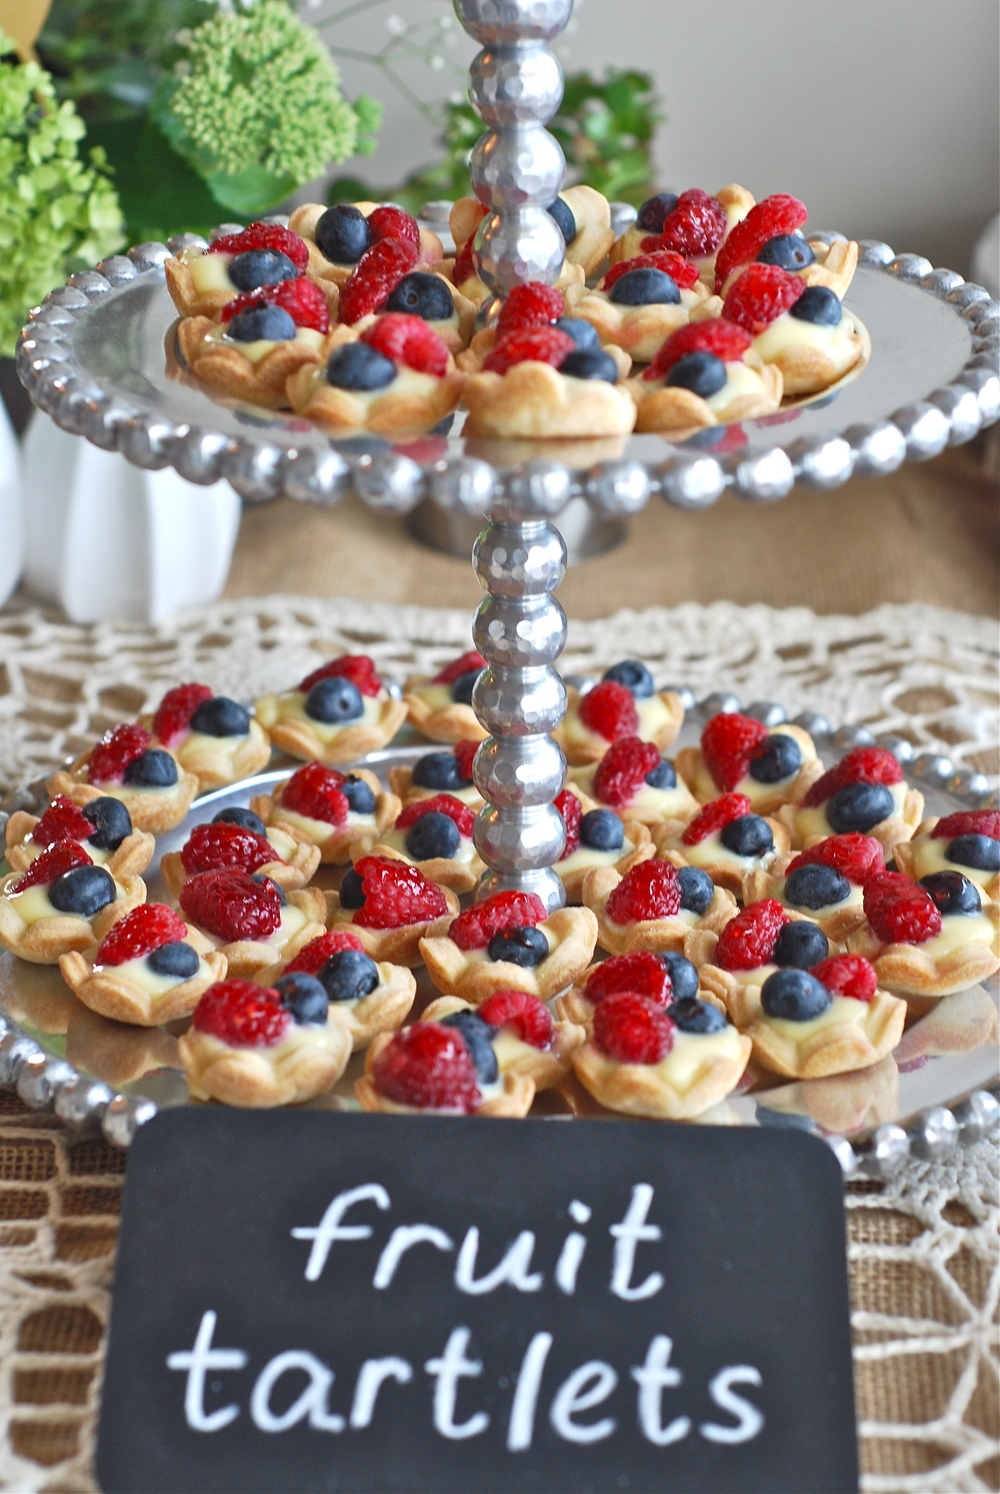 Raspberry and blueberry fruit tartlets